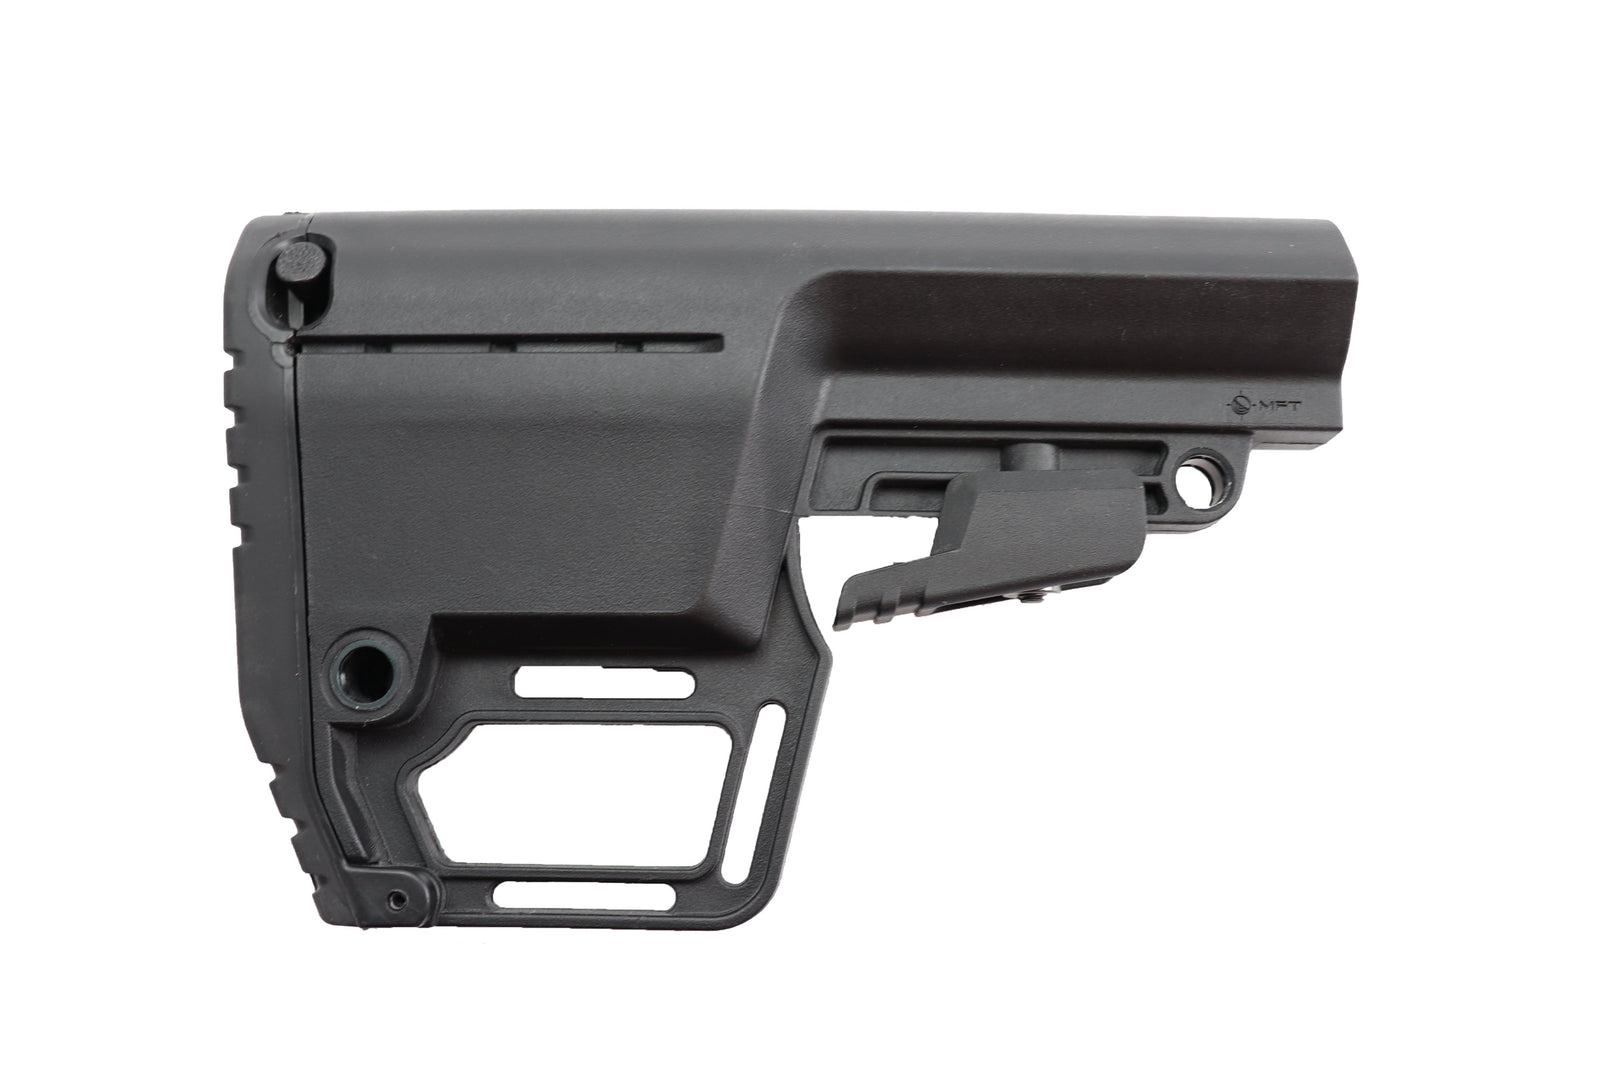 Mission First Tactical Battlelink Utility Stock for M4 Series AEG (Color: Black)